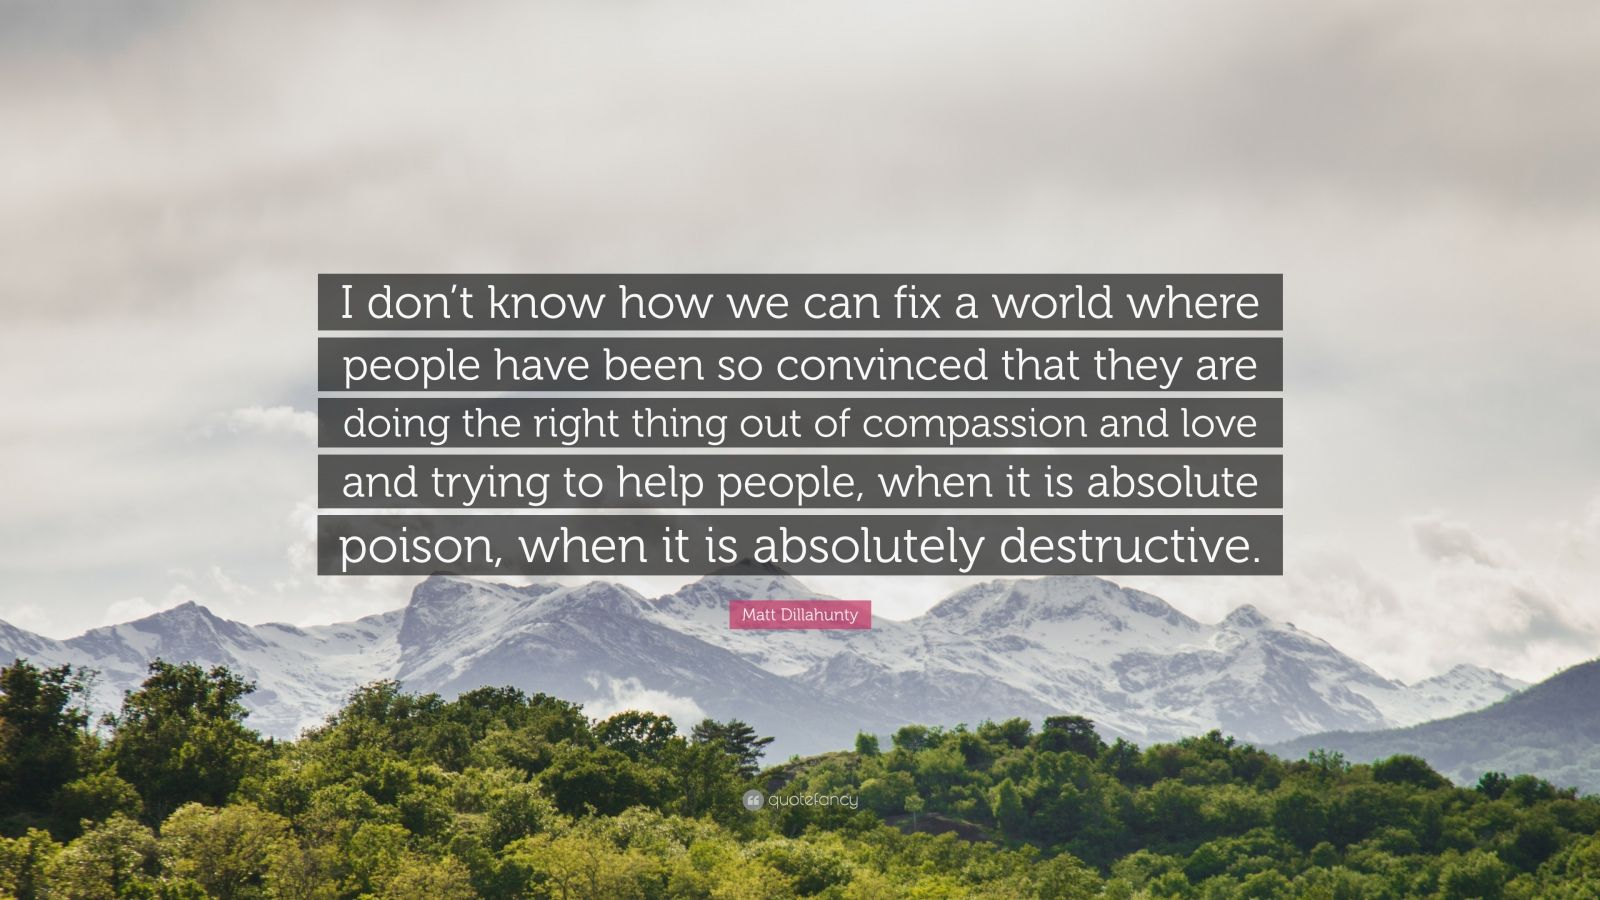 """Matt Dillahunty Quote: """"I don't know how we can fix a world where people have been so convinced that they are doing the right thing out of compassion and love and trying to help people, when it is absolute poison, when it is absolutely destructive."""""""